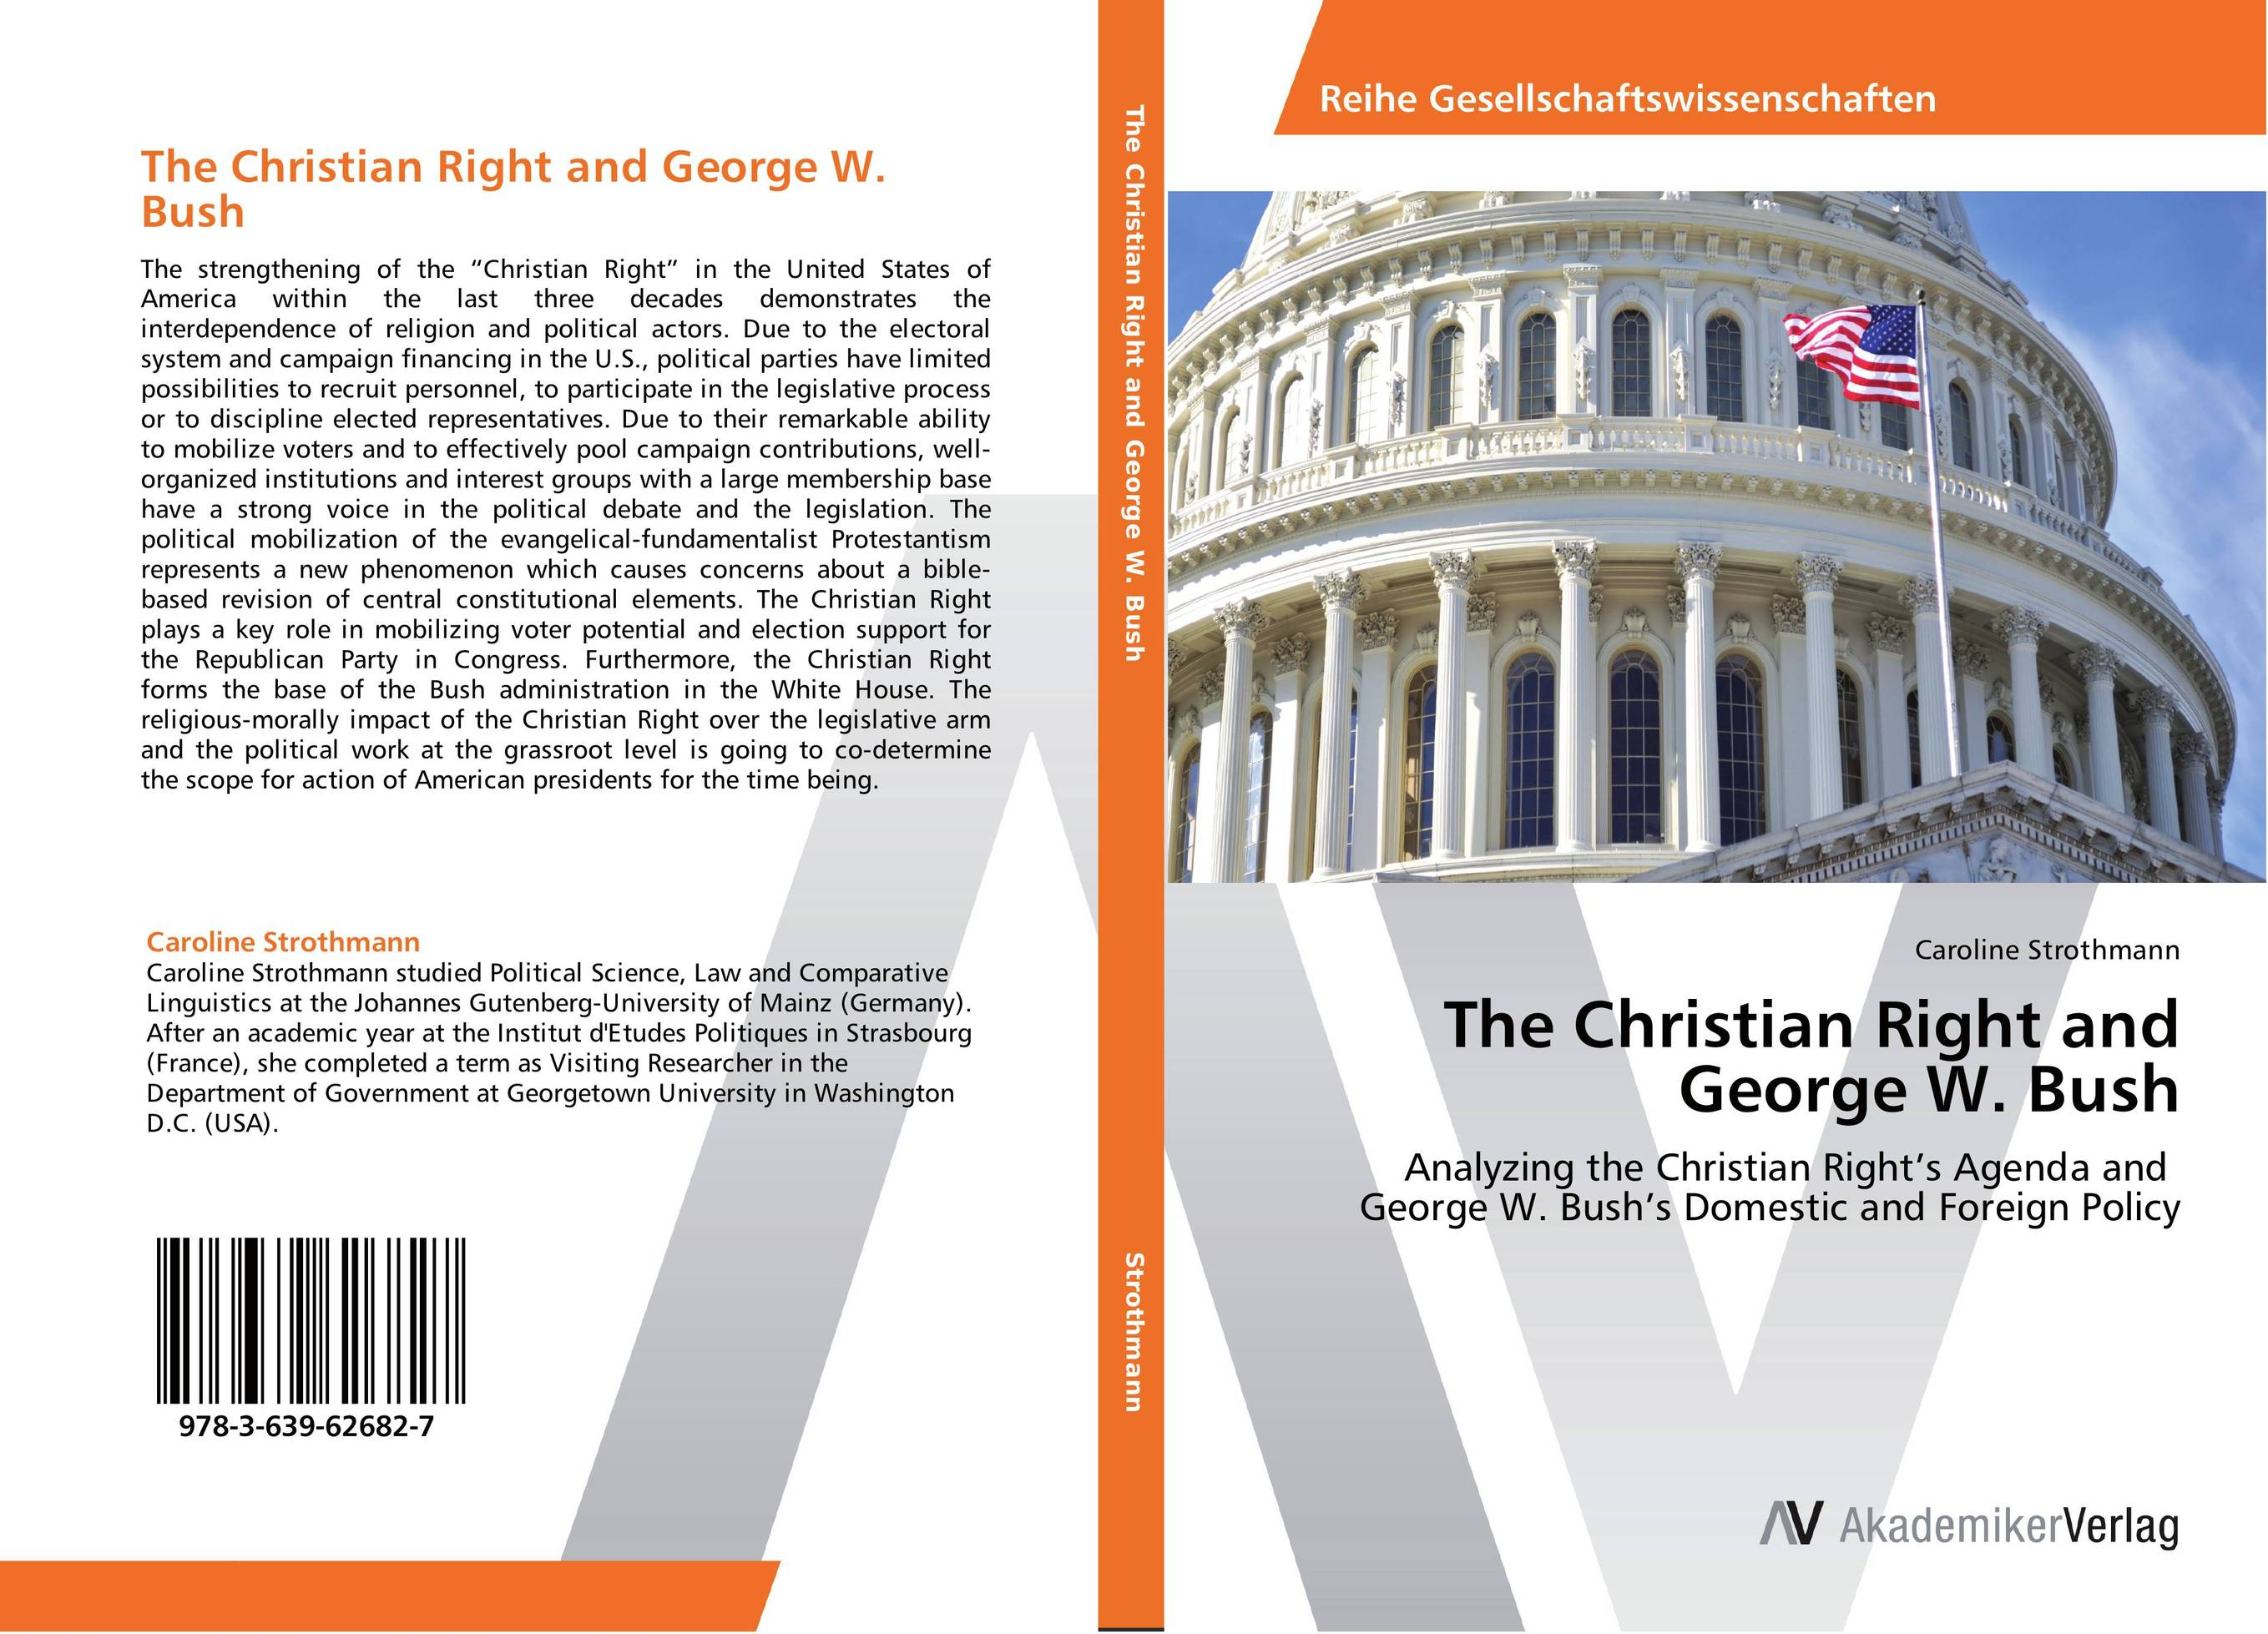 The Christian Right and George W. Bush miguel delatorre a a lily among the thorns imagining a new christian sexuality